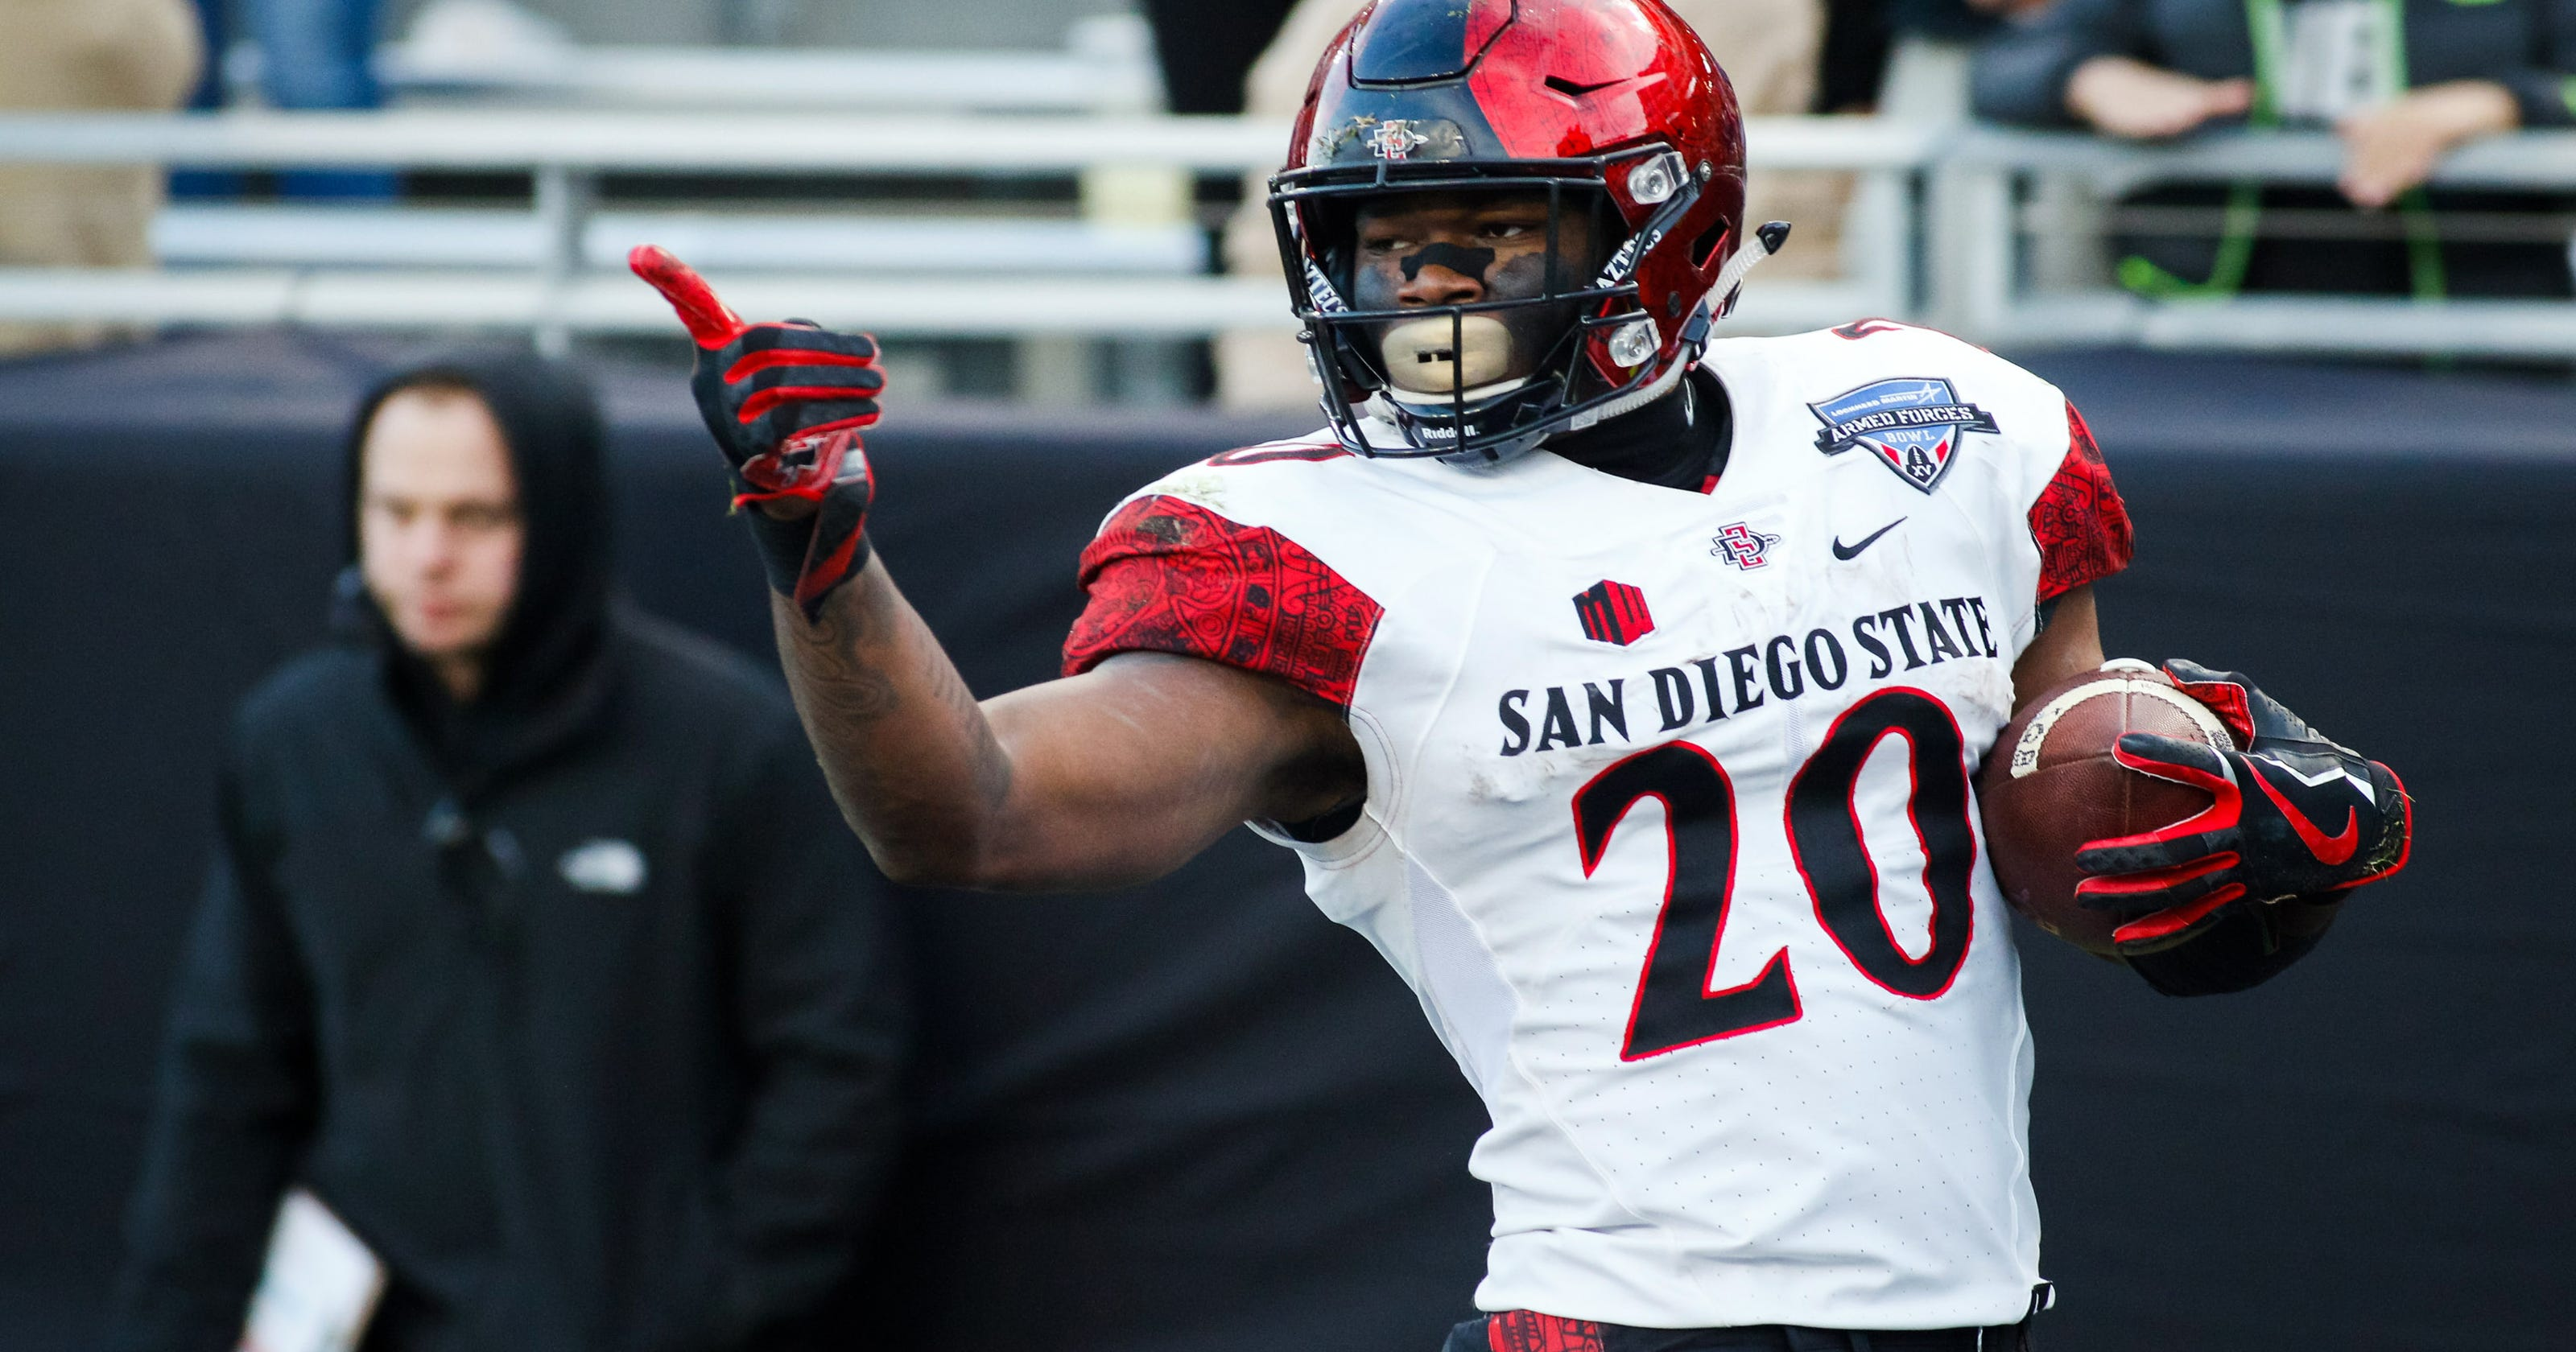 wholesale dealer 1d706 c568a After trading down, Seahawks draft San Diego State RB ...